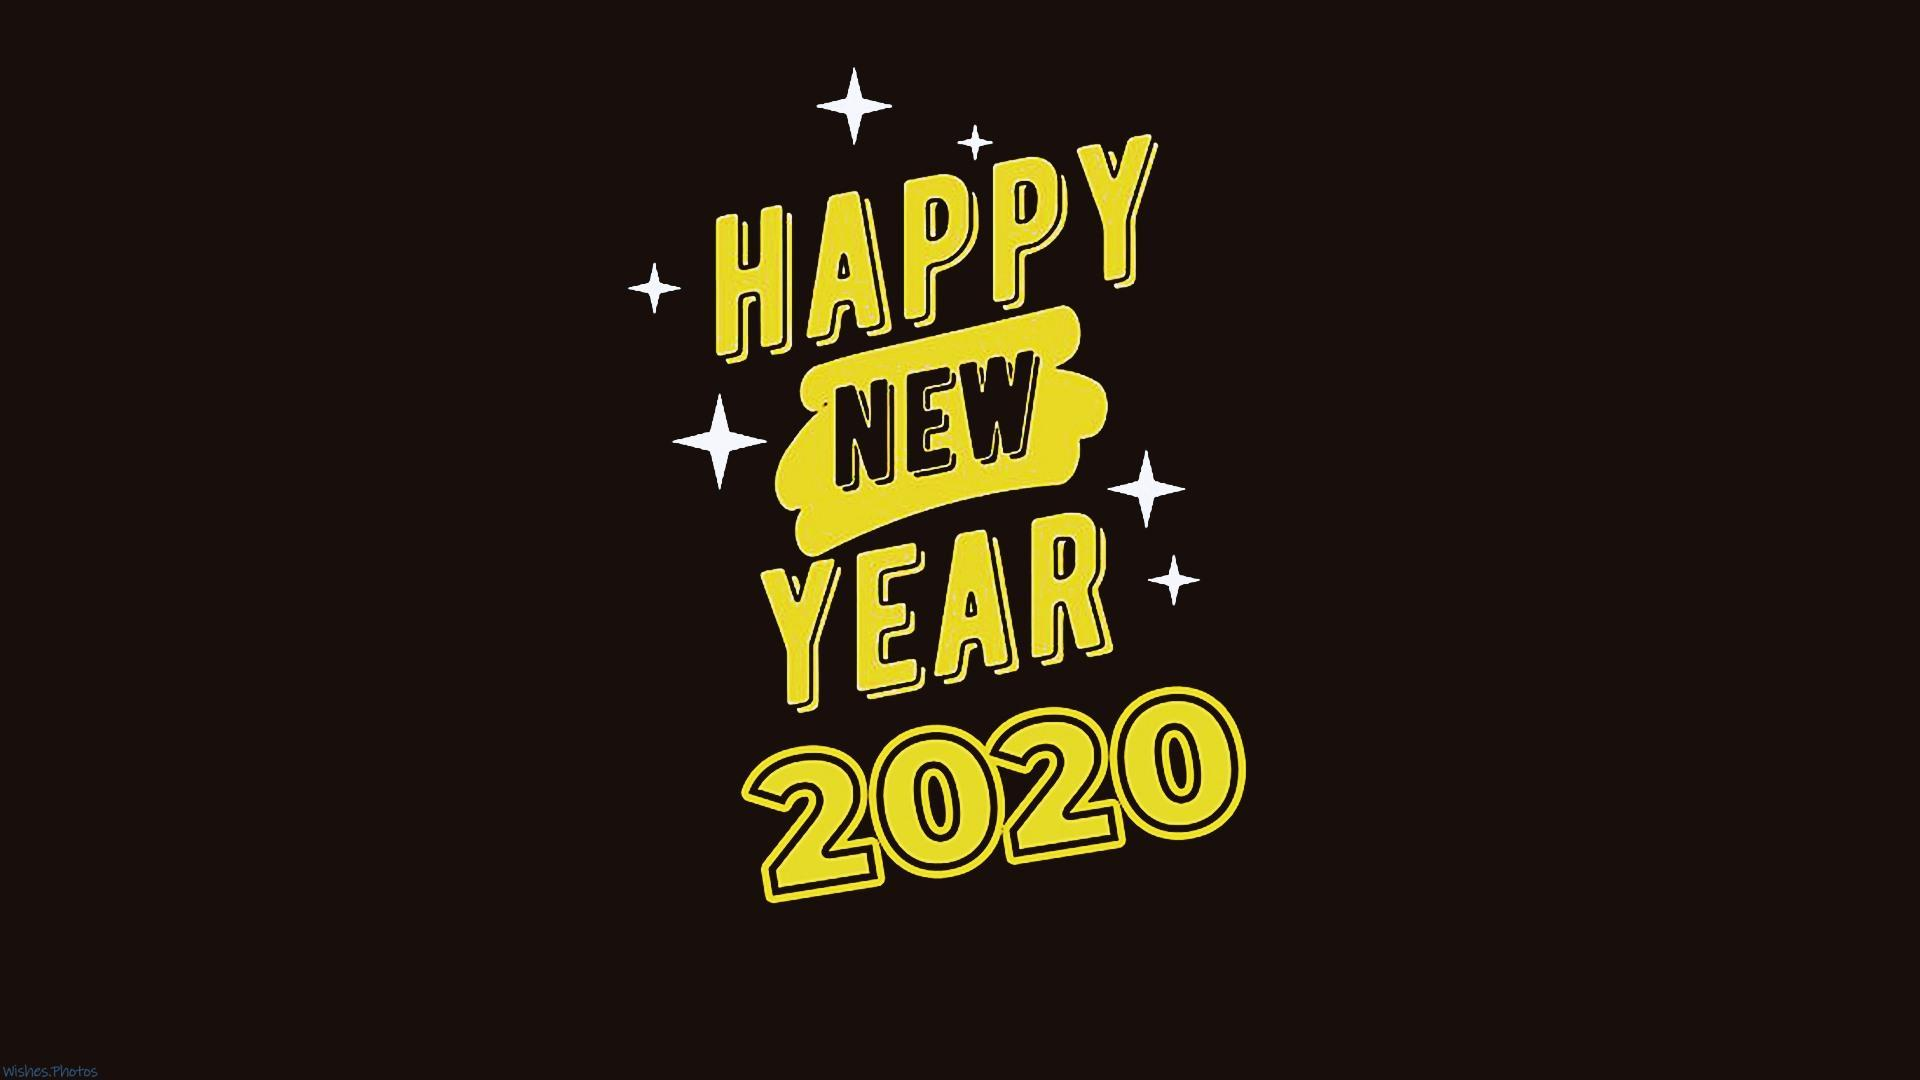 Happy New Year 2020 1920x1080 Wallpapers Wallpaper Cave